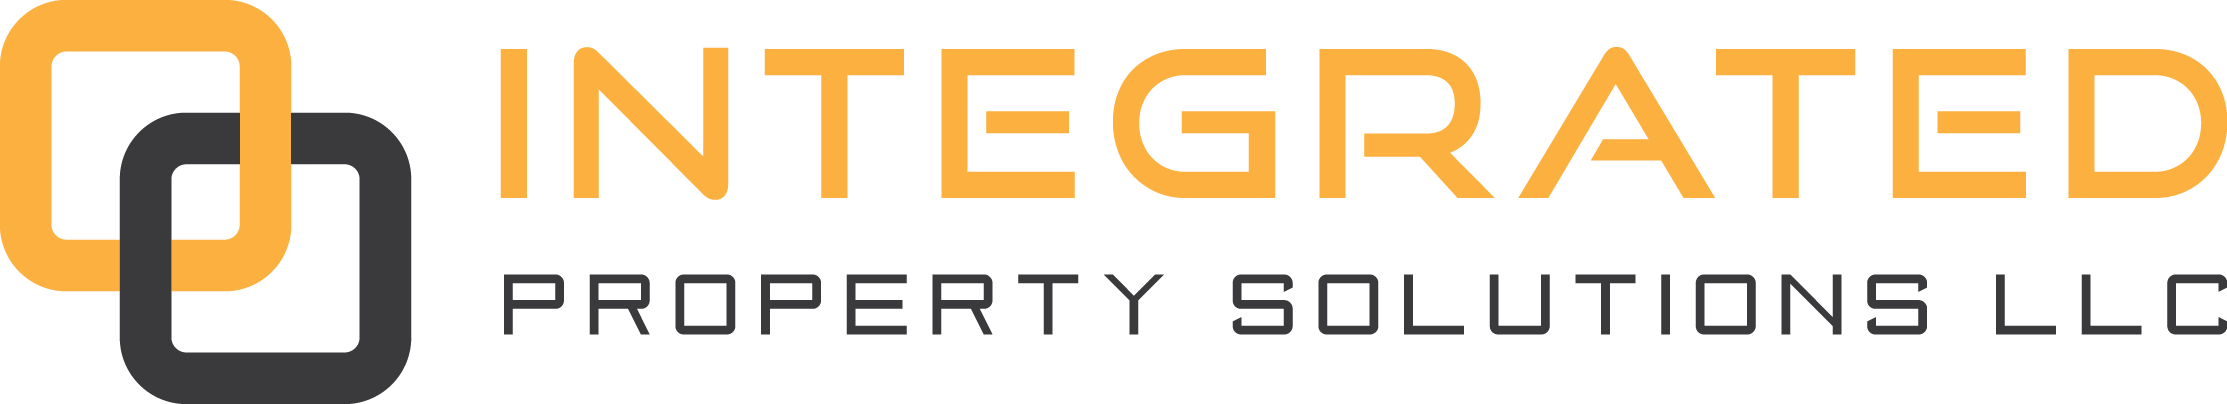 Integrated Property Solutions LLC